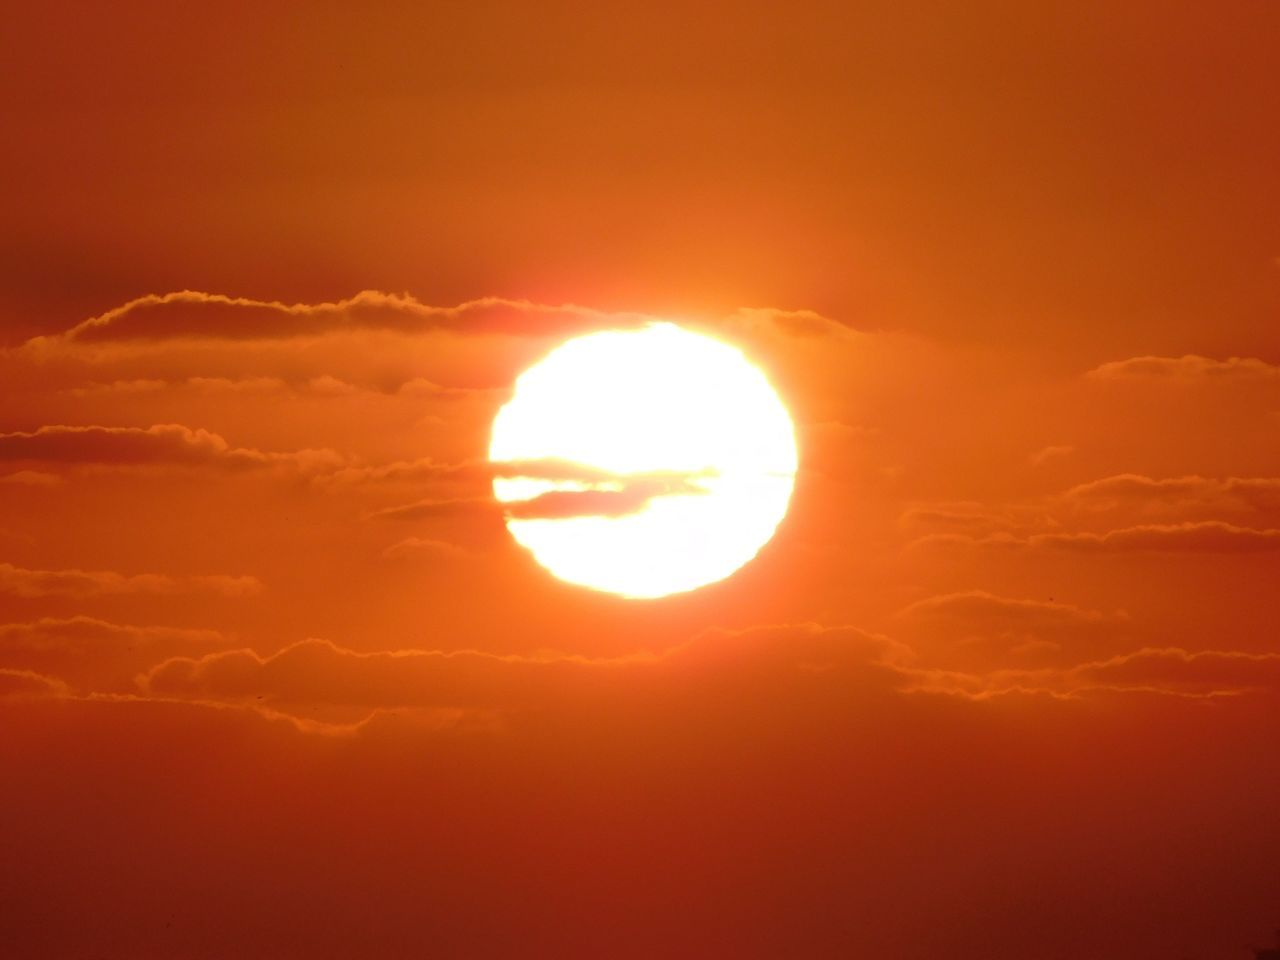 Scenic View Of Sun Against Orange Sky During Sunset